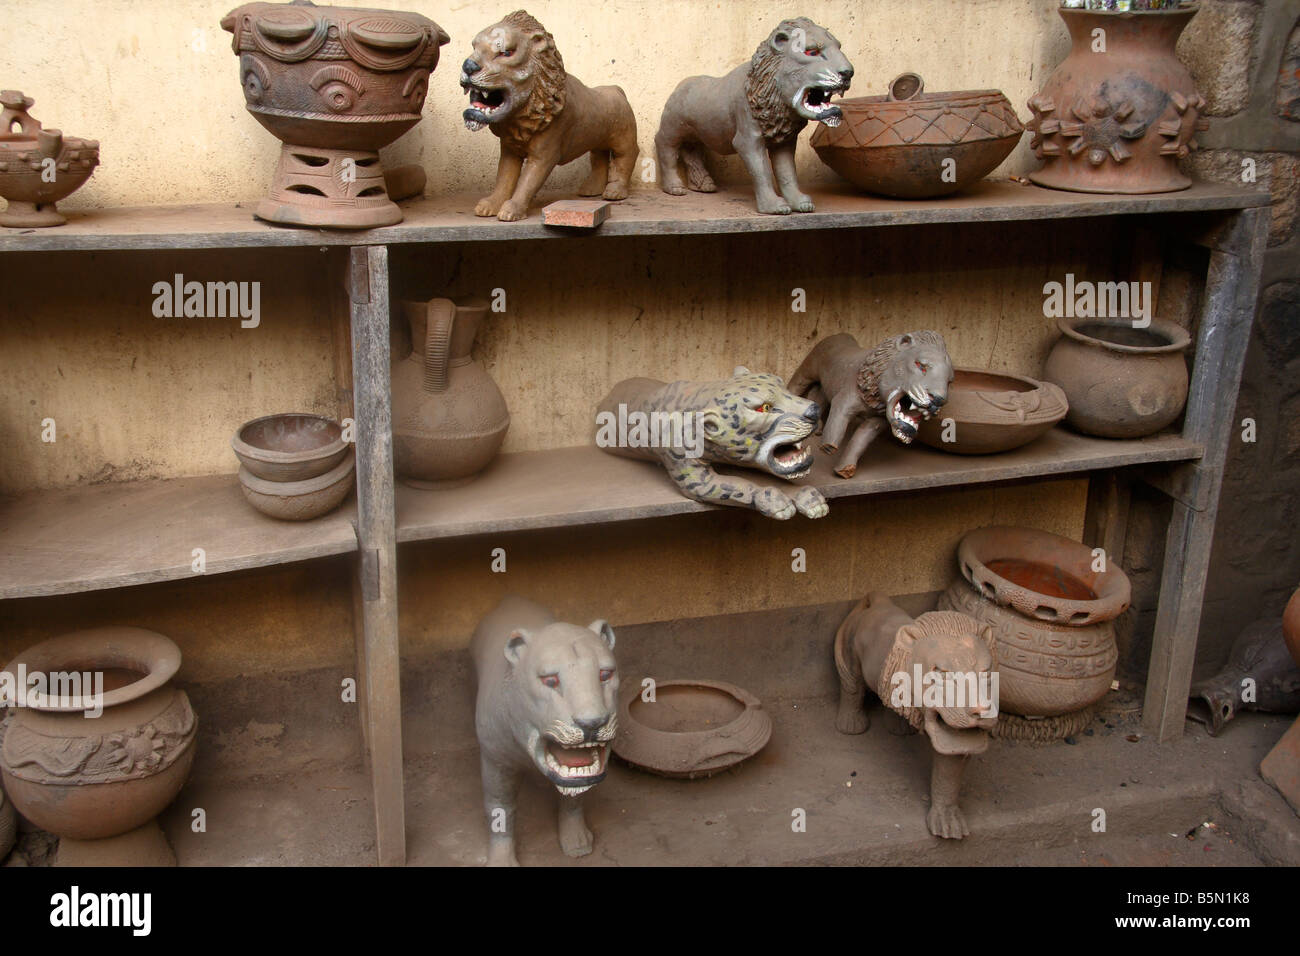 Ceramic animals and pots on display at Prespot pottery works Bamessing Northwest Province Cameroon - Stock Image